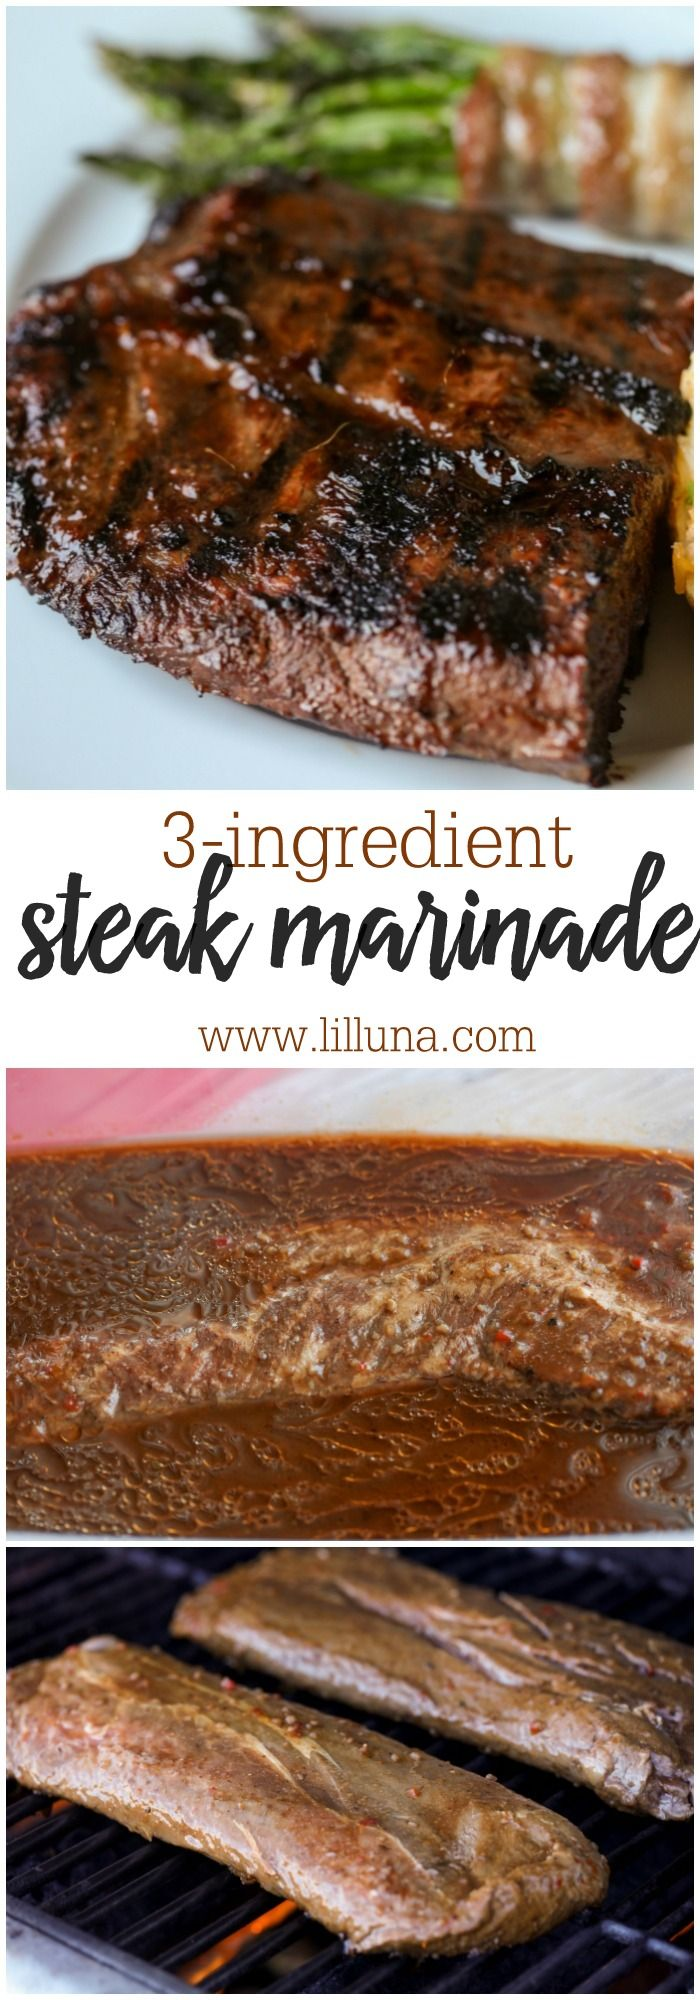 3-ingredient Steak Marinade - it is our favorite marinade recipe and makes our steak so delicious!! (How To Make Gravy For Cube Steak)